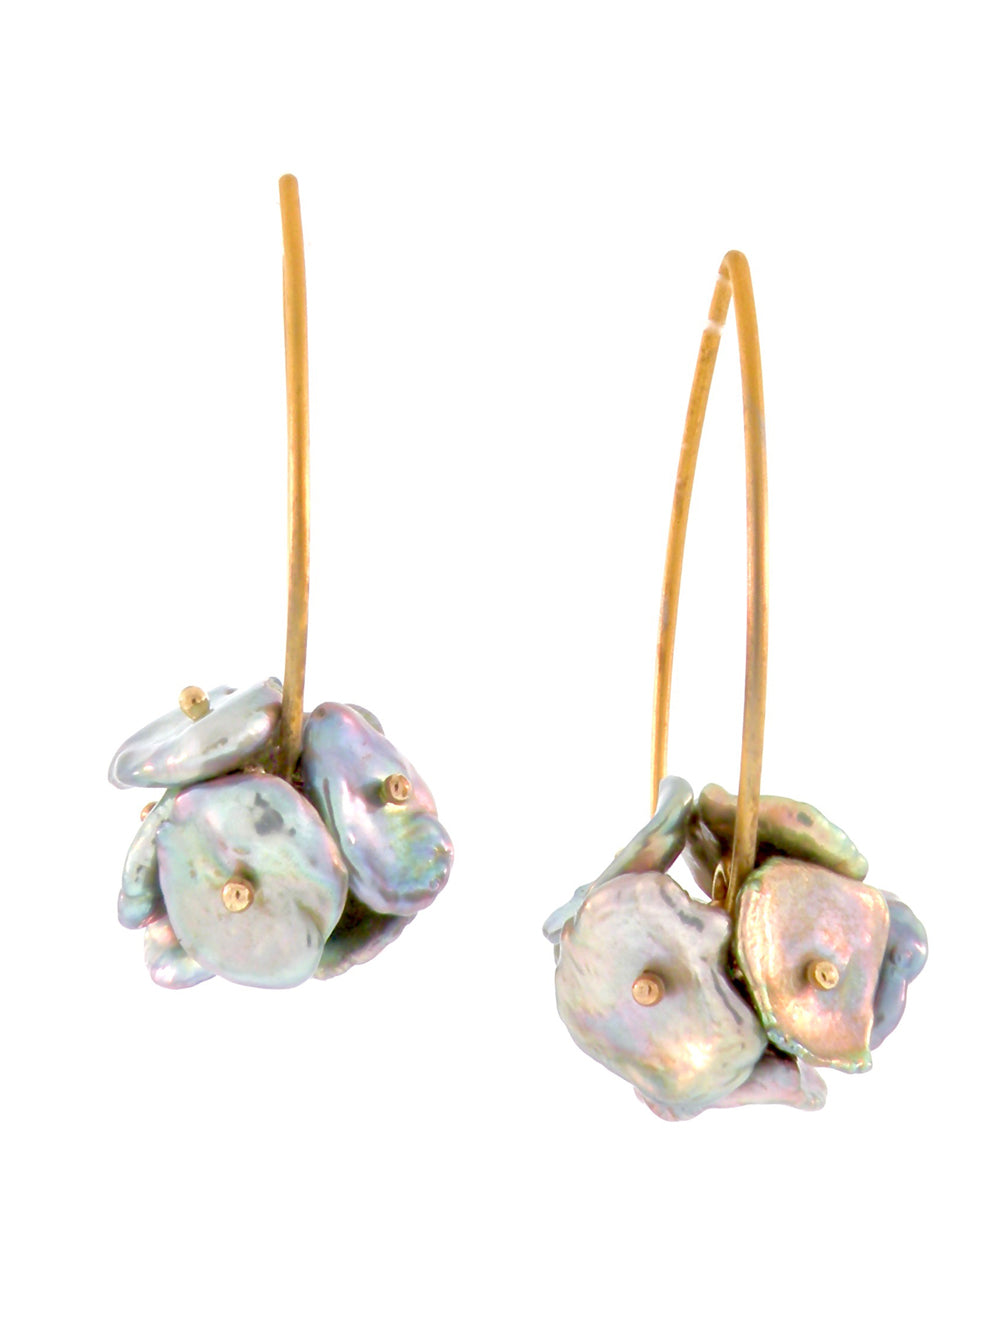 Multi-tonal Keshi Pearl Earrings - Dana Busch Designs